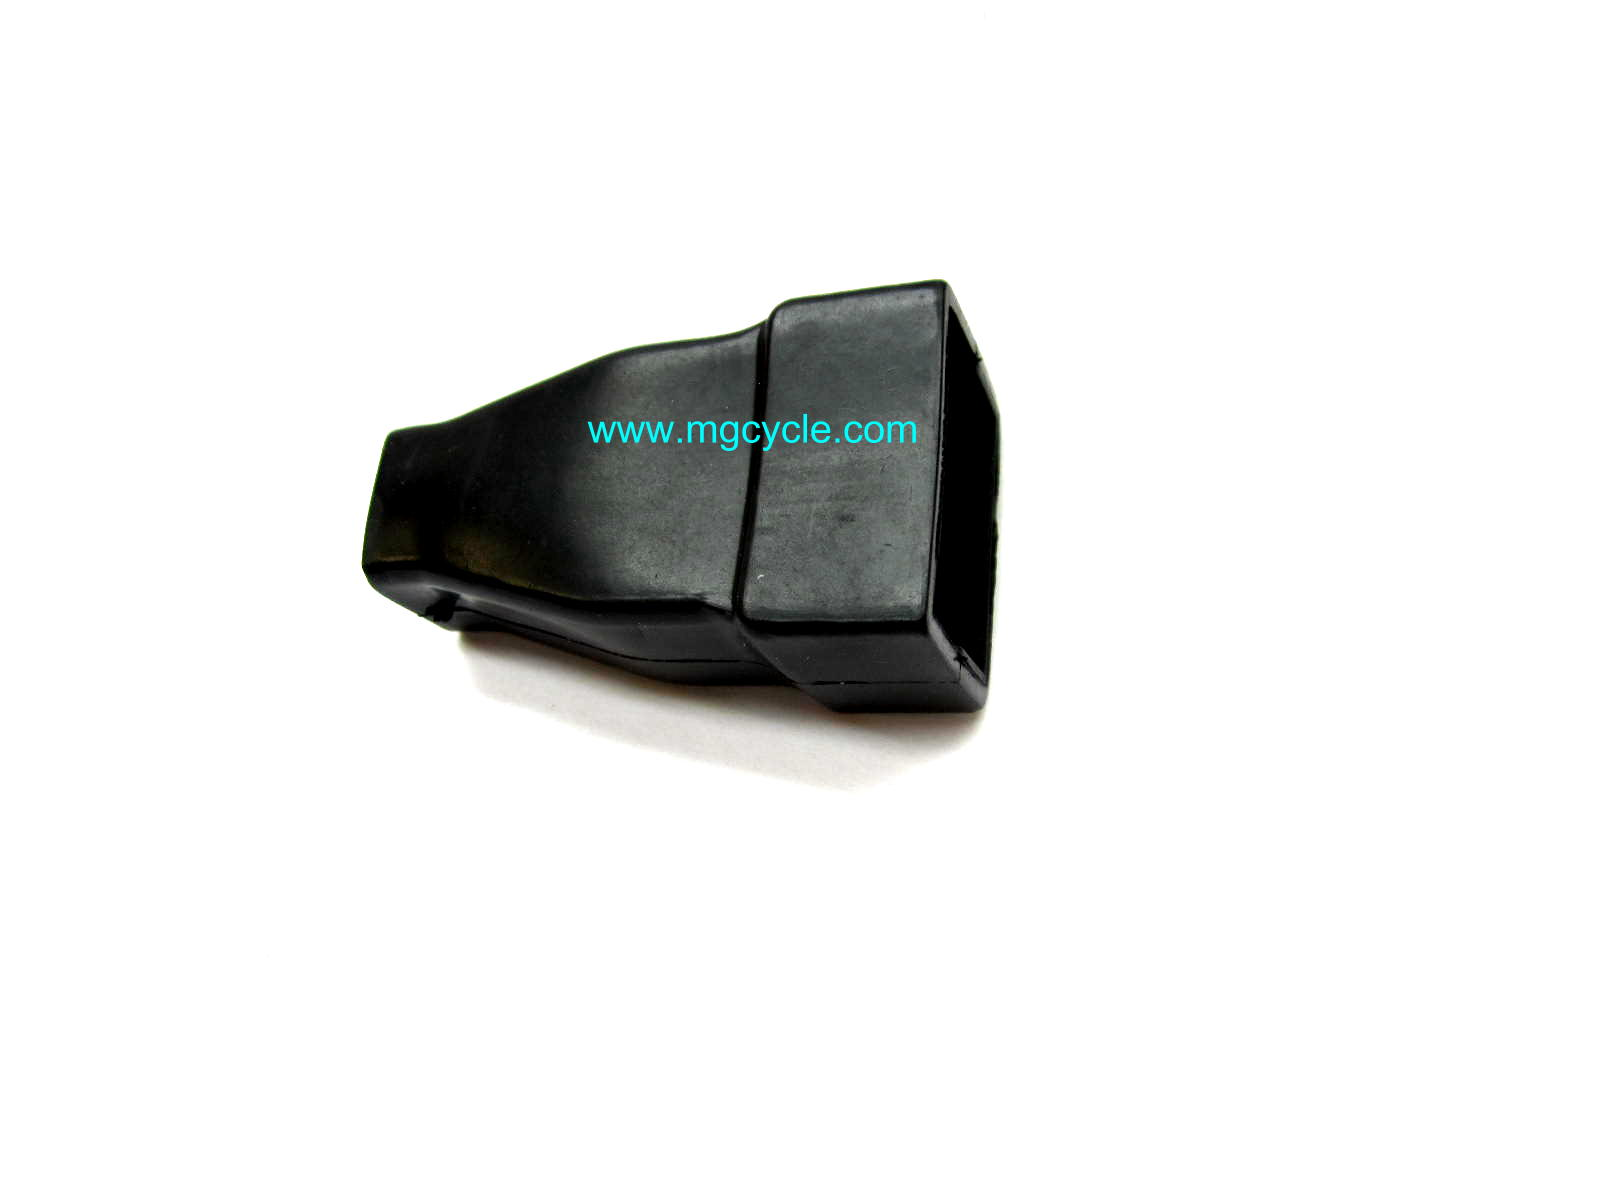 Molex plug rubber cover, 12 pin